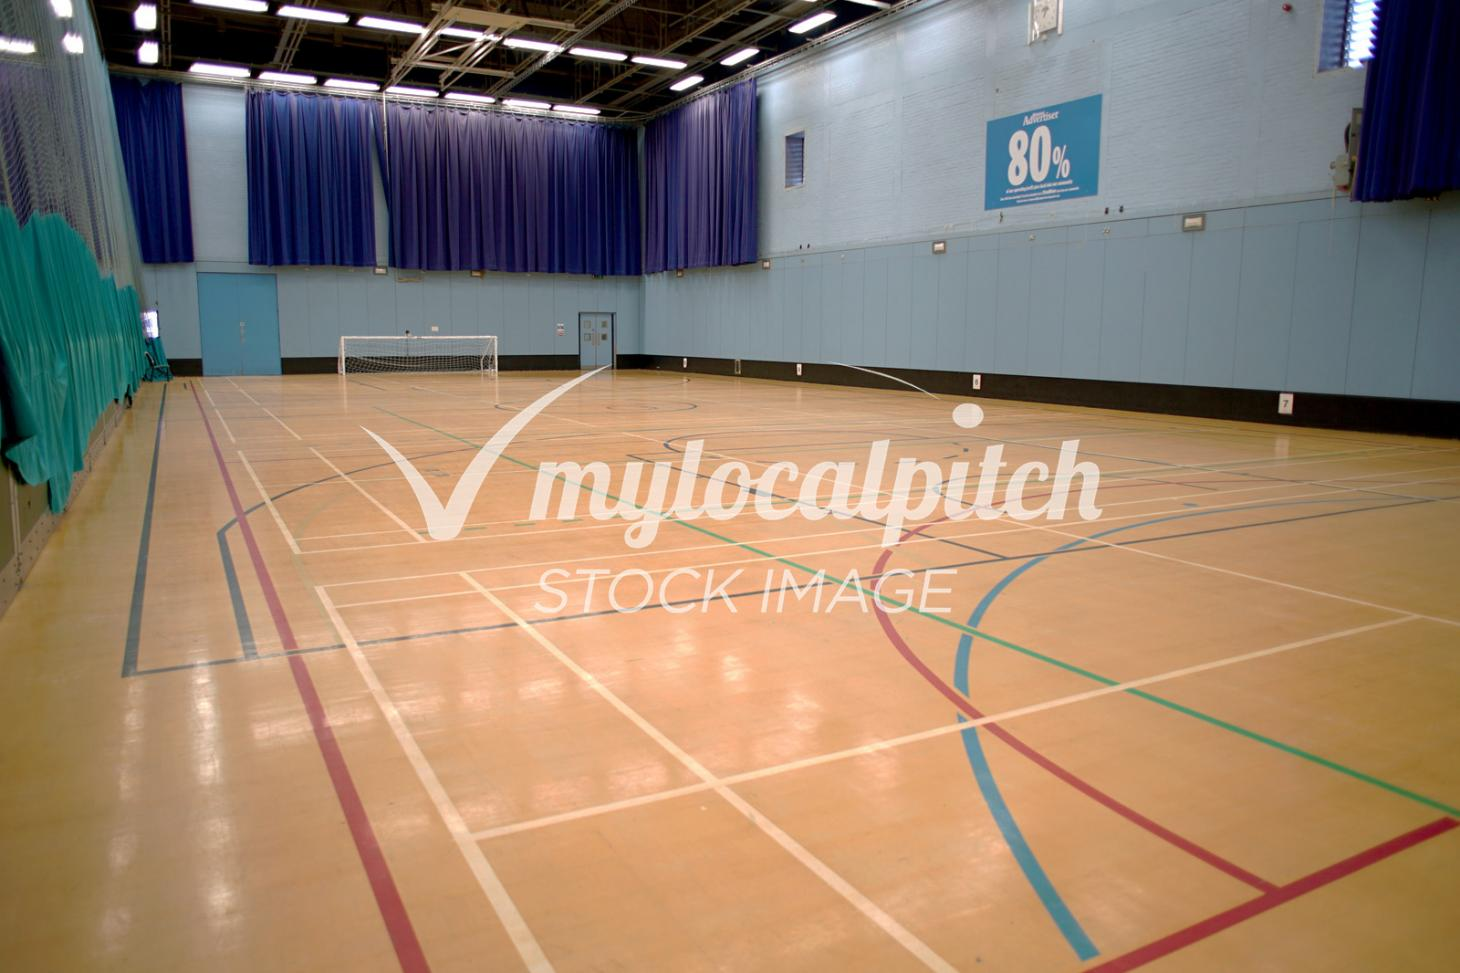 Cabra Parkside Community and Sports Centre 5 a side   Indoor football pitch